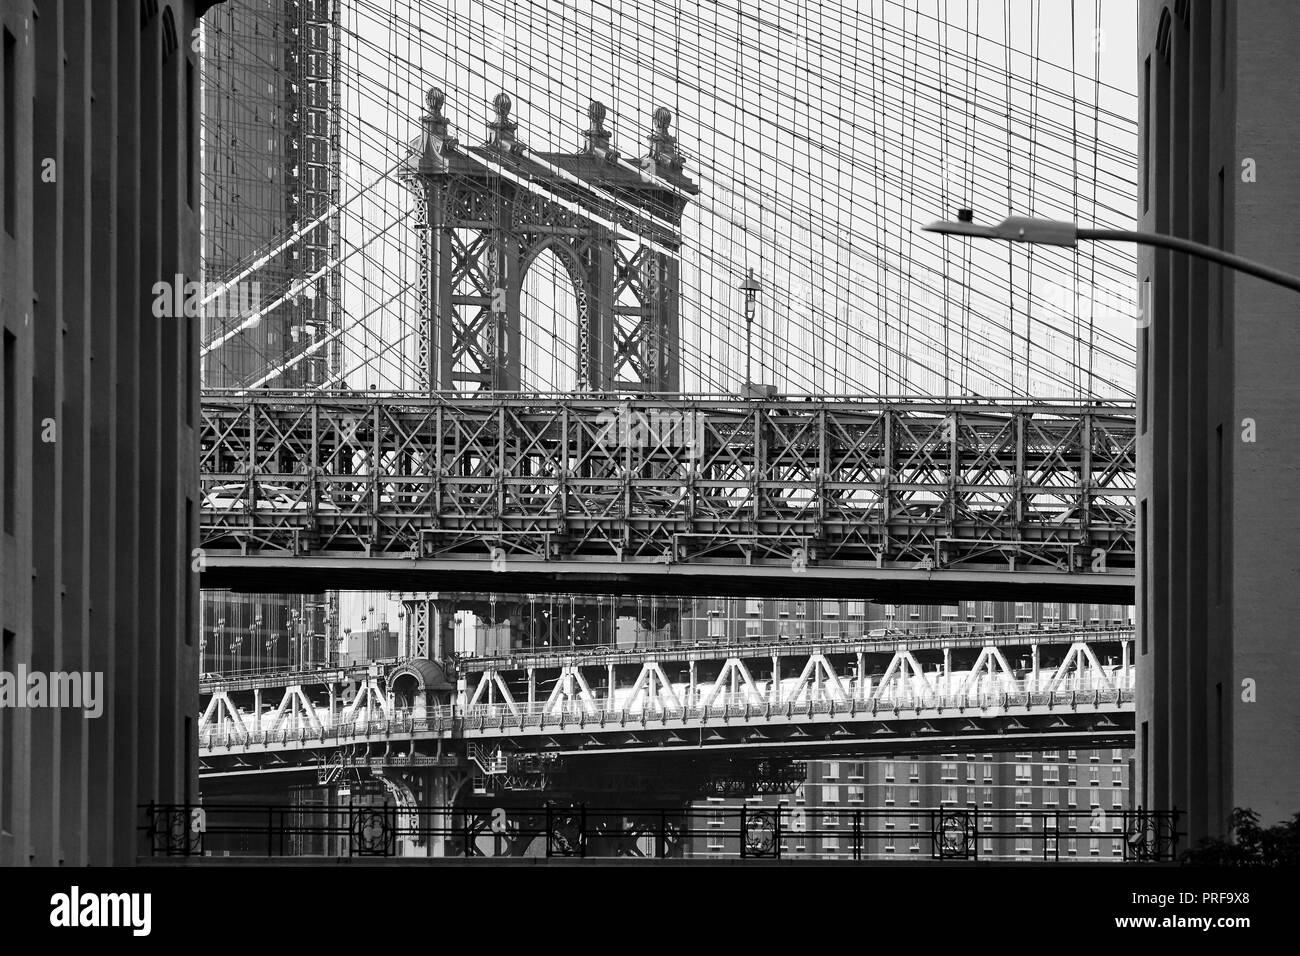 Immagine in bianco e nero di Brooklyn e Manhattan Bridge in una cornice, New York City, Stati Uniti d'America Foto Stock